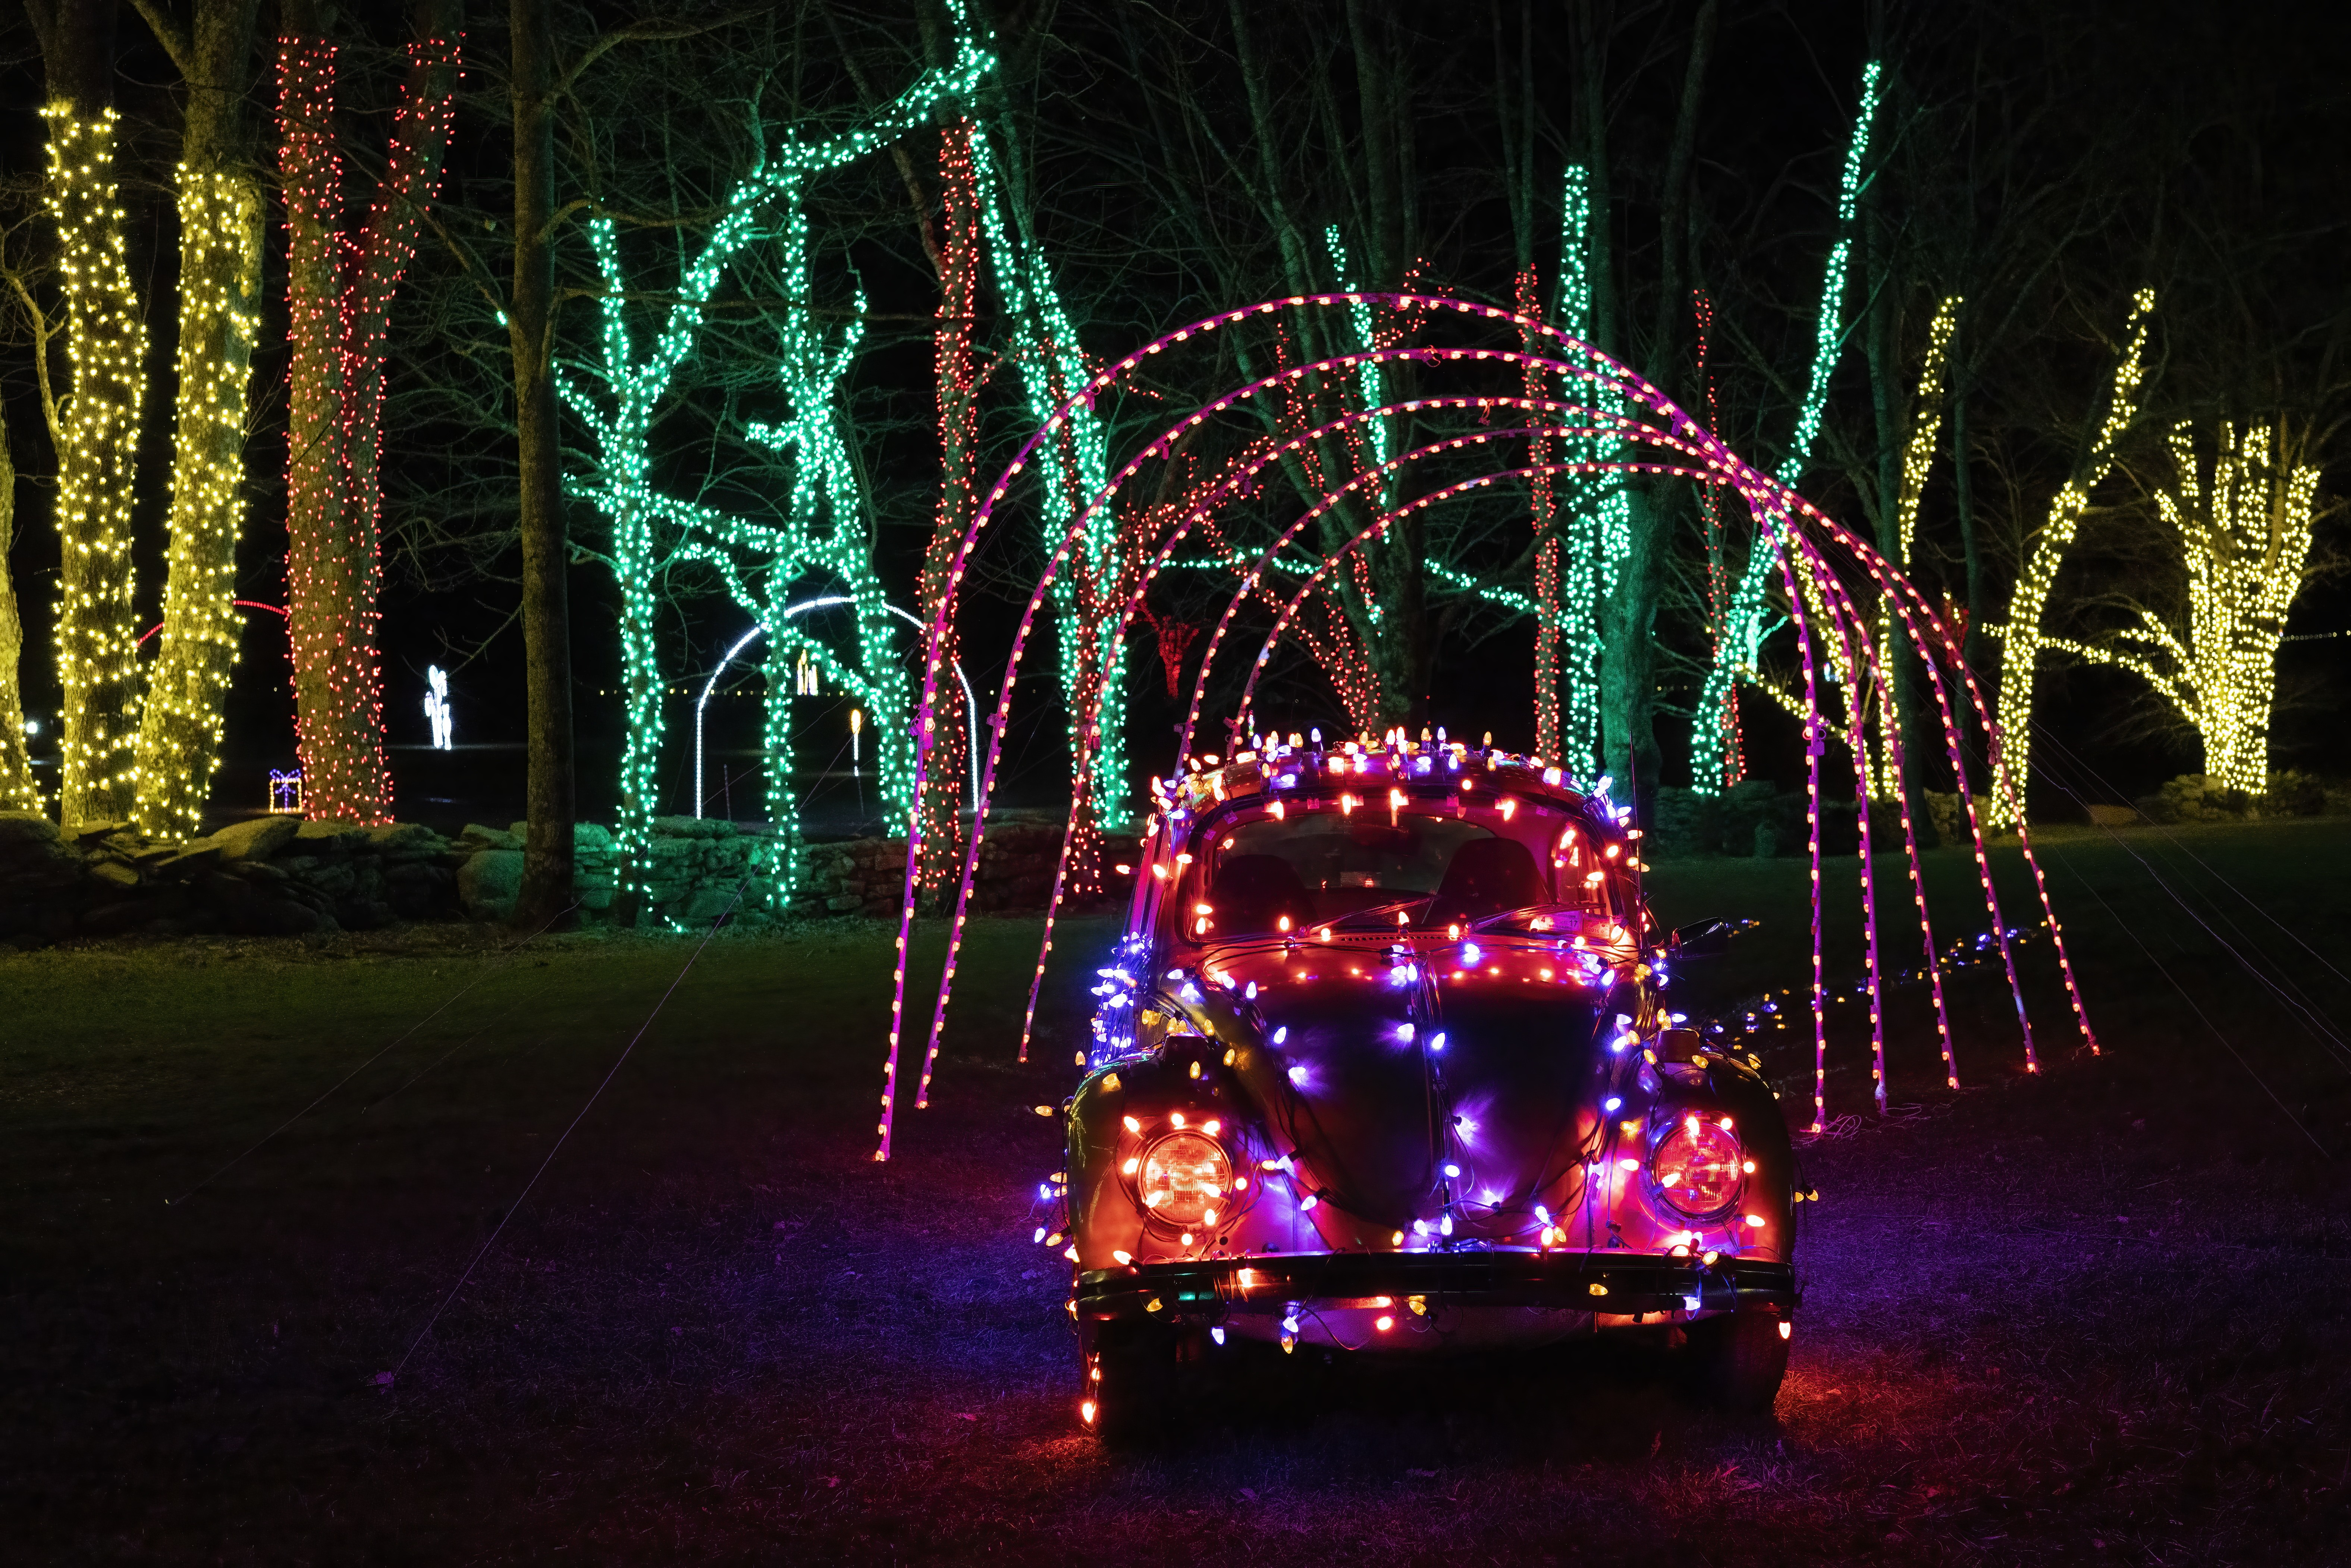 Community Builders Christmas Town 2021 Craft Fair Garner Get In The Christmas Spirit With These Hudson Valley Holiday Light Shows Holiday Events Hudson Valley Chronogram Magazine